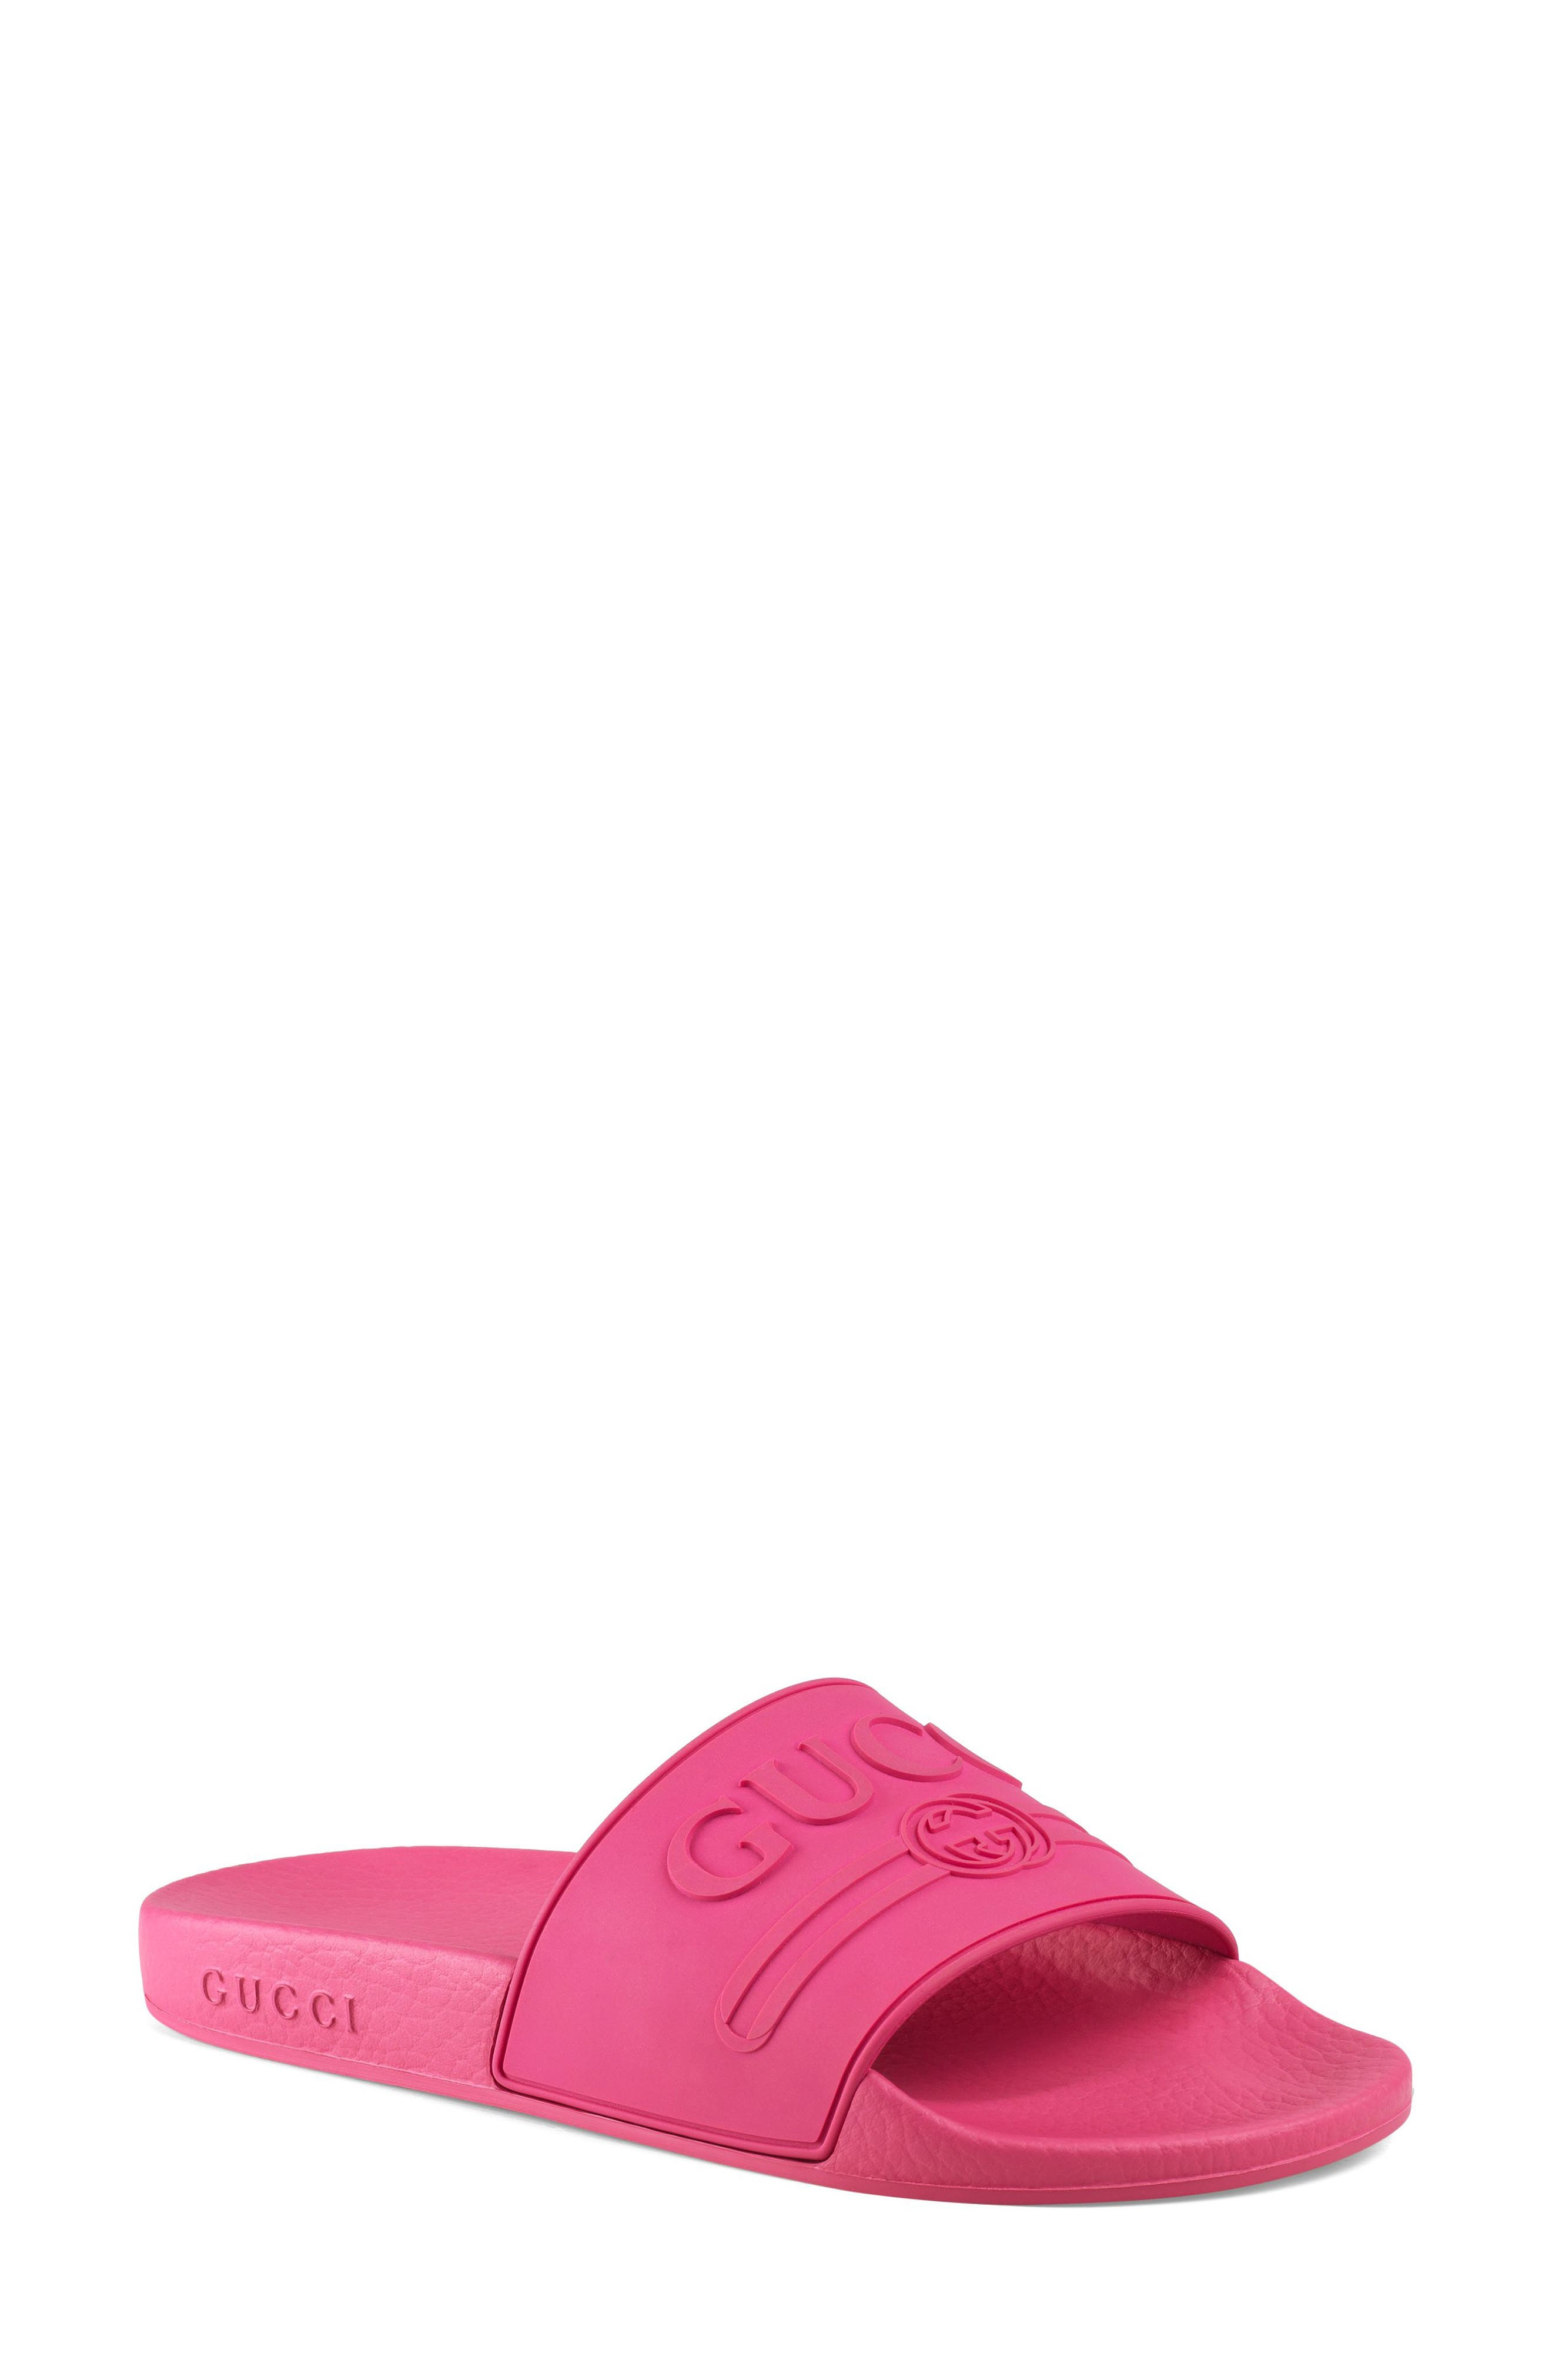 GUCCI, Pursuit Logo Slide Sandal, Main thumbnail 1, color, FUCHSIA